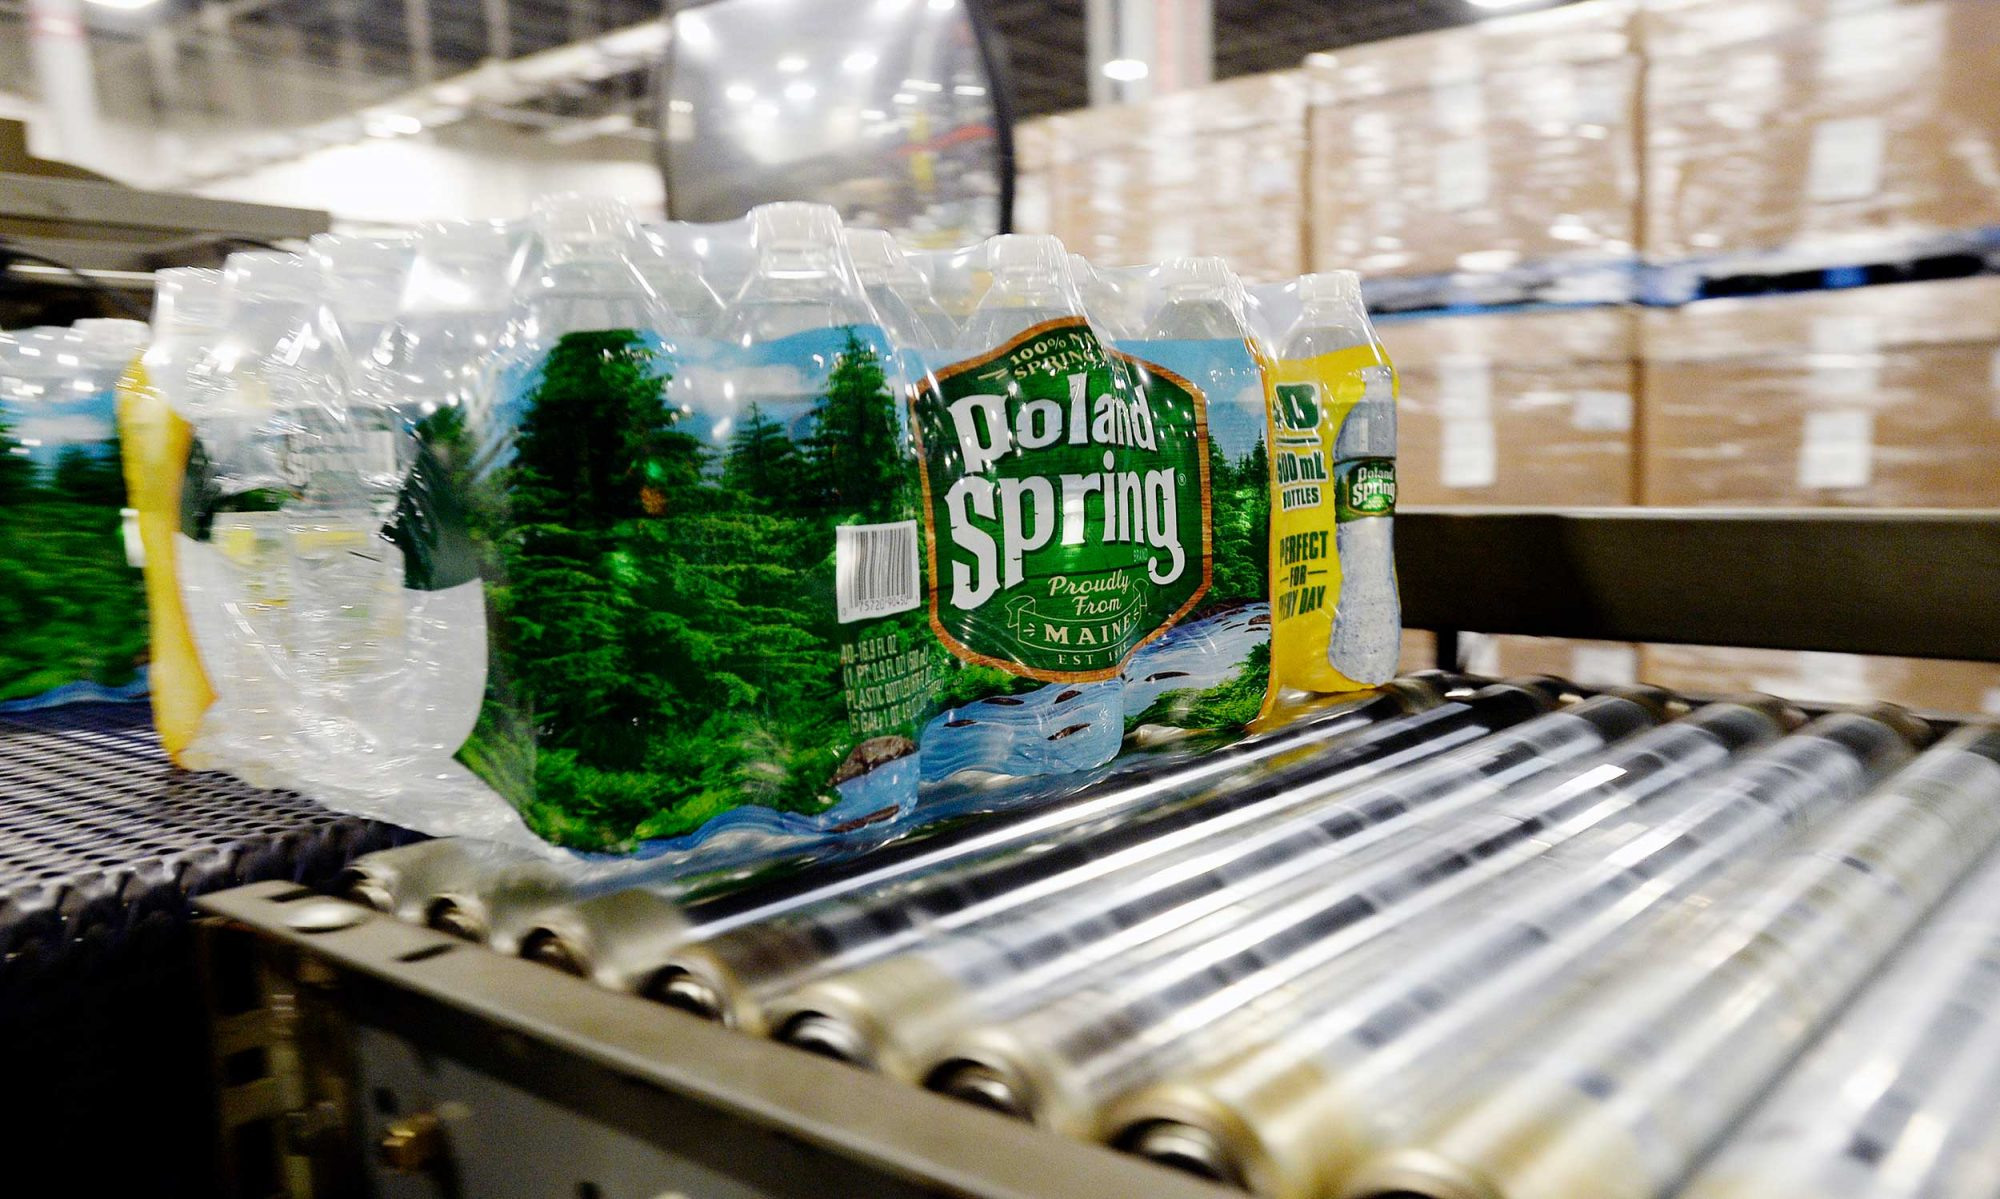 EC: Poland Spring Water Isn't Spring Water, According to New Lawsuit